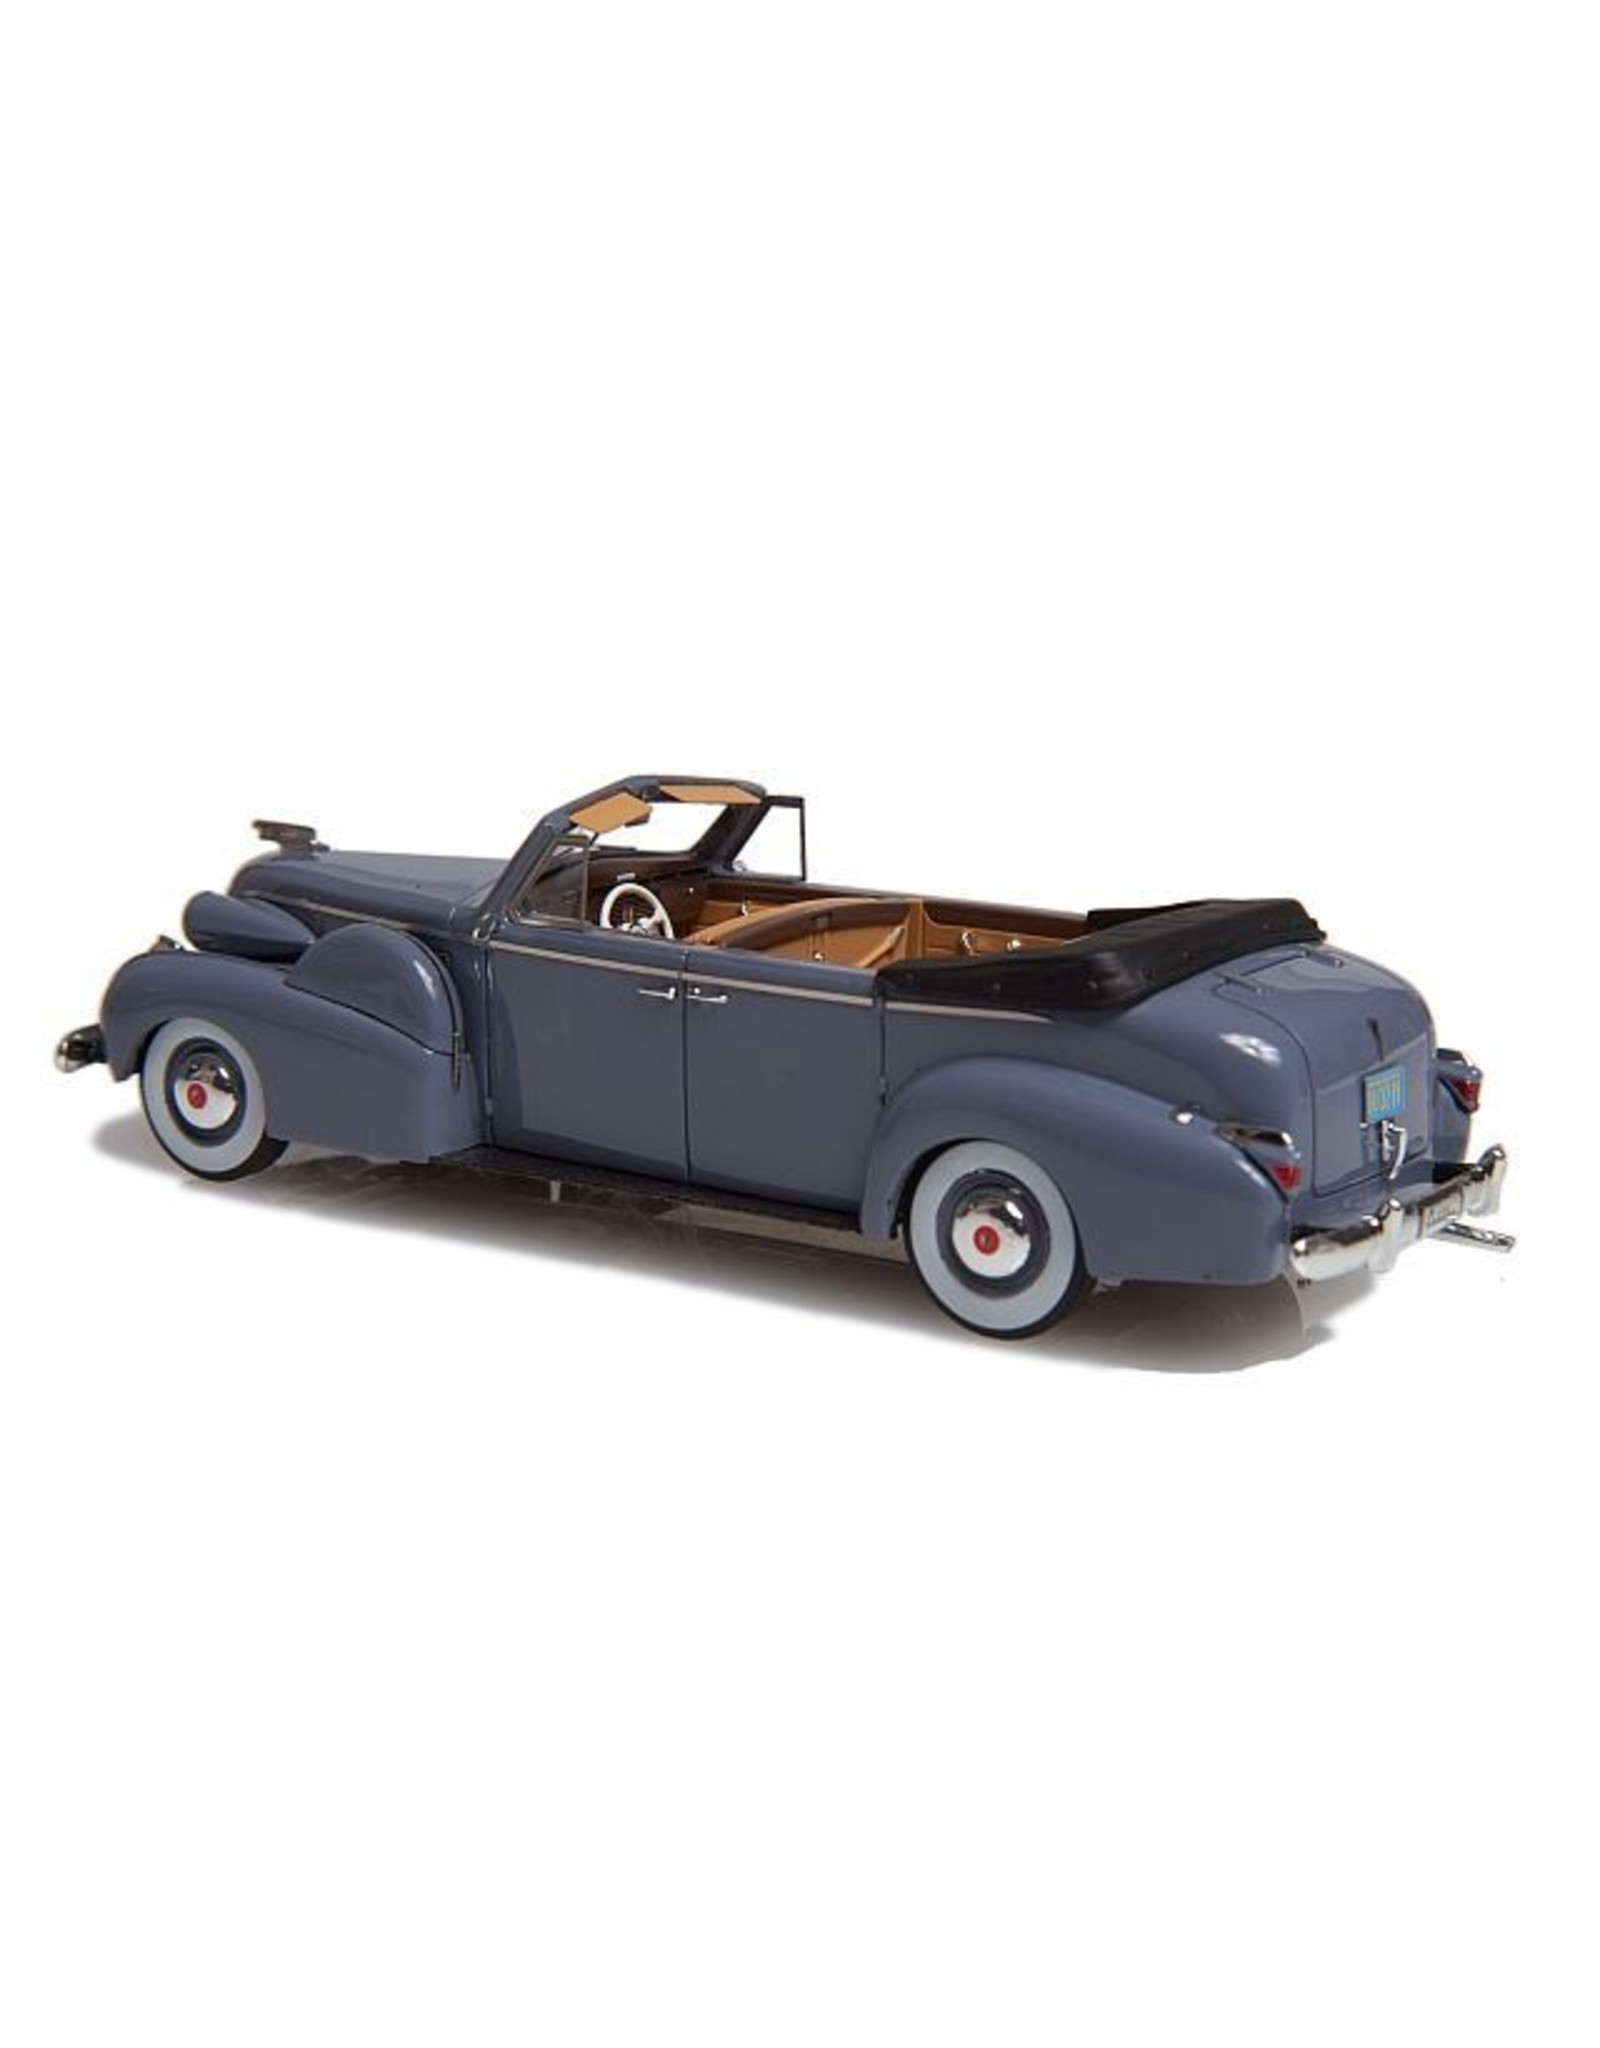 Cadillac by Fleetwood. CADILLAC SERIE 75 CABRIOLET(1934)BY FLEETWOOD(open roof-grey.